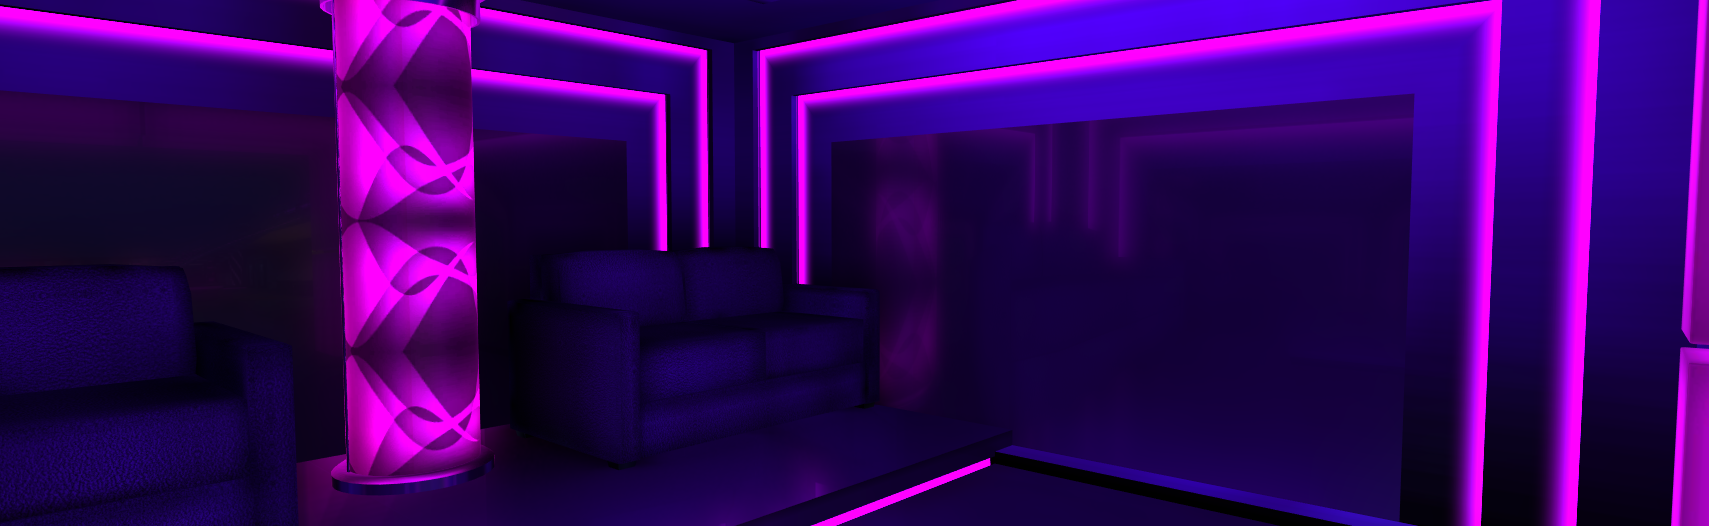 Liber Chat Room (MOBILE) - Night Club